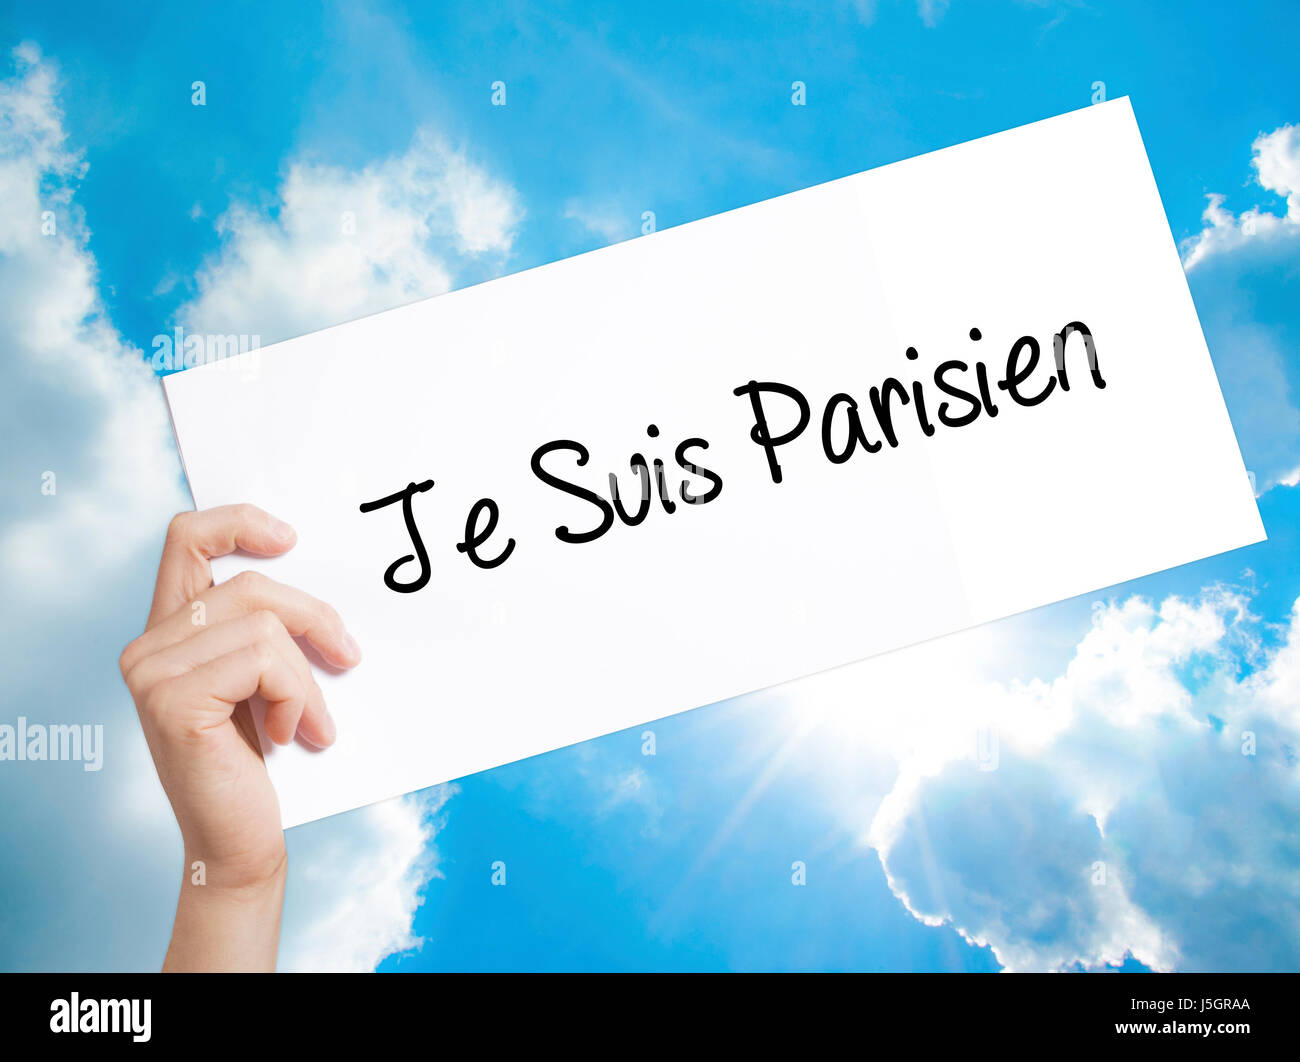 Je Suis Parisien Sign on white paper. Man Hand Holding Paper with text. Isolated on sky background. Stock Photo Stock Photo